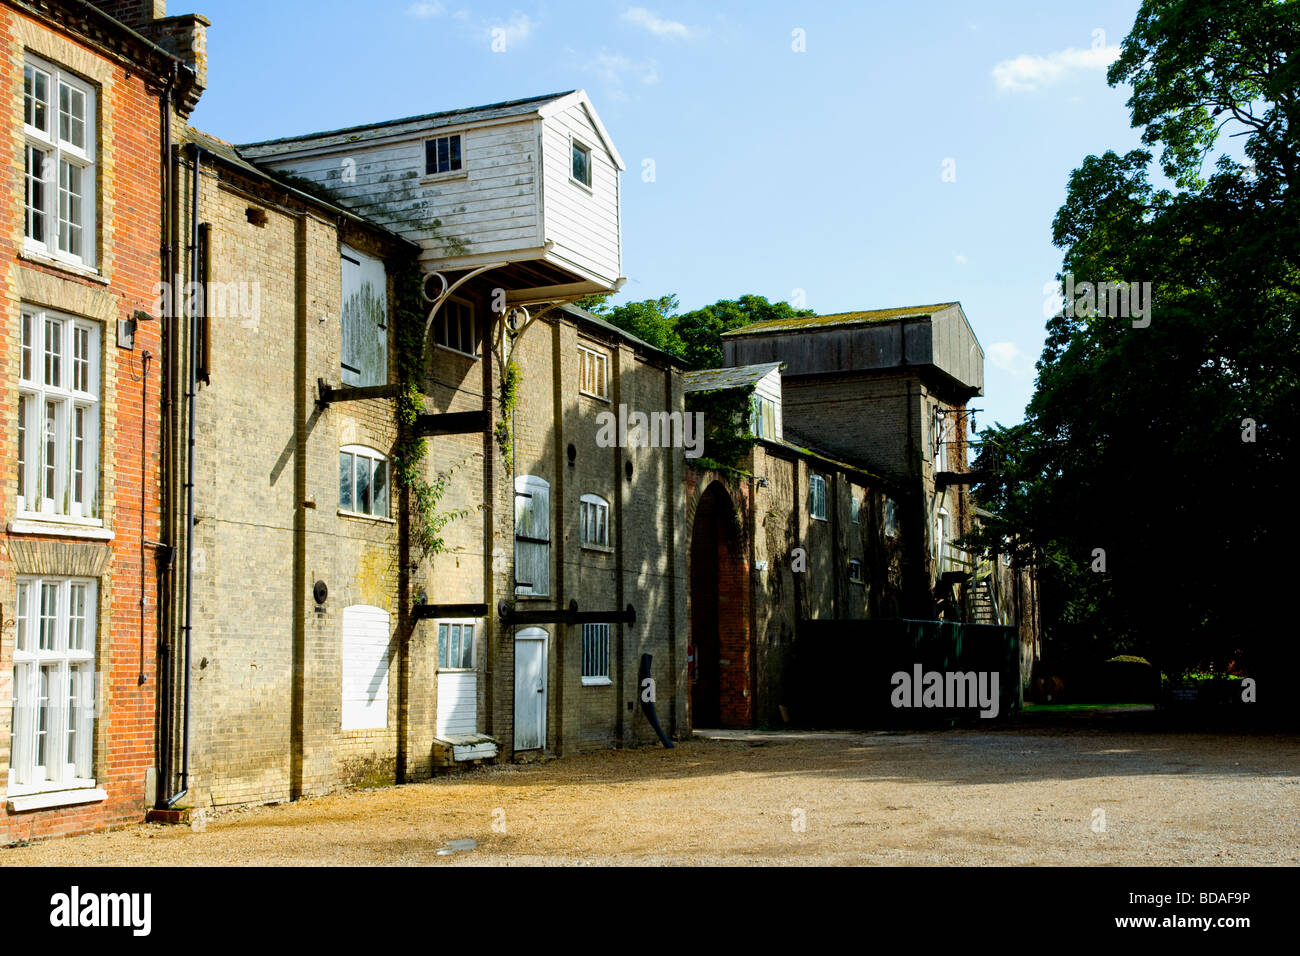 The Maltings at Snape, Suffolk, England.  Derelict warehouses. - Stock Image